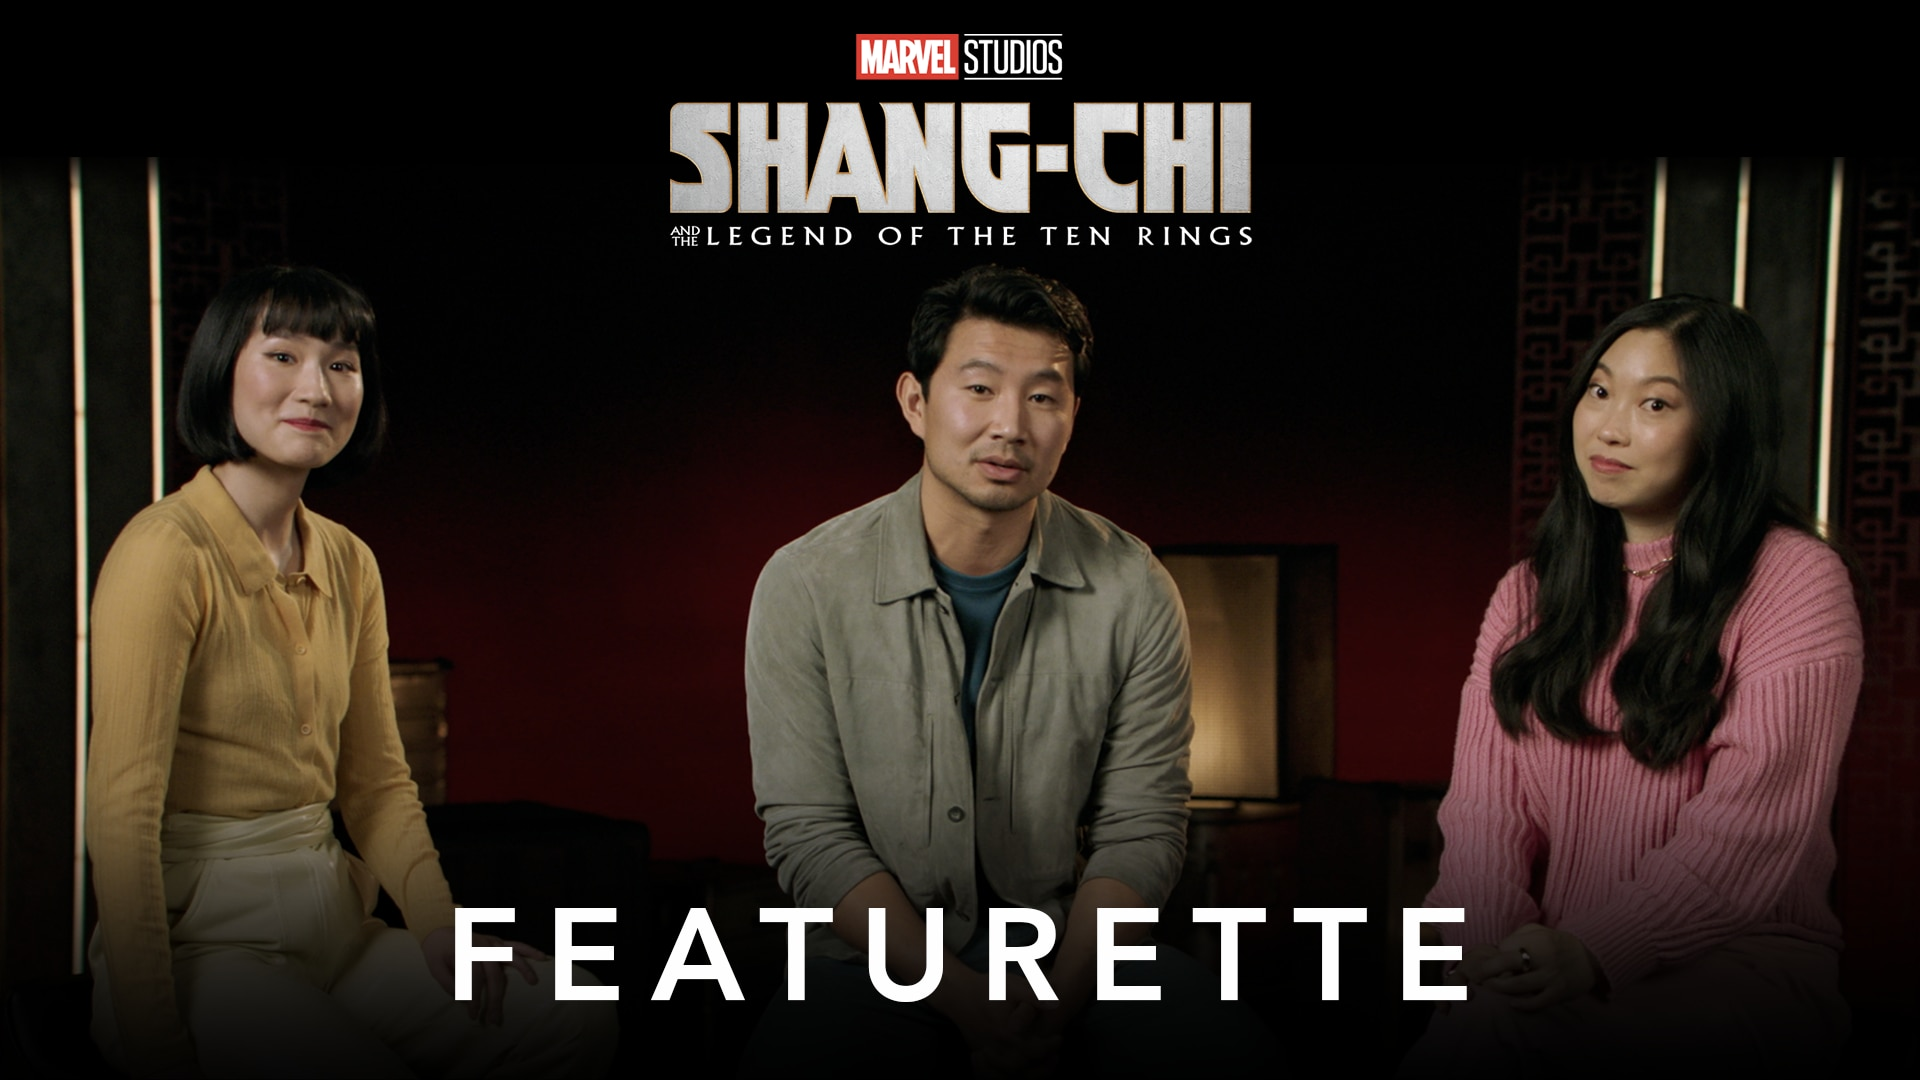 Most Likely To Featurette | Marvel Studios' Shang-Chi and the Legend of the Ten Rings